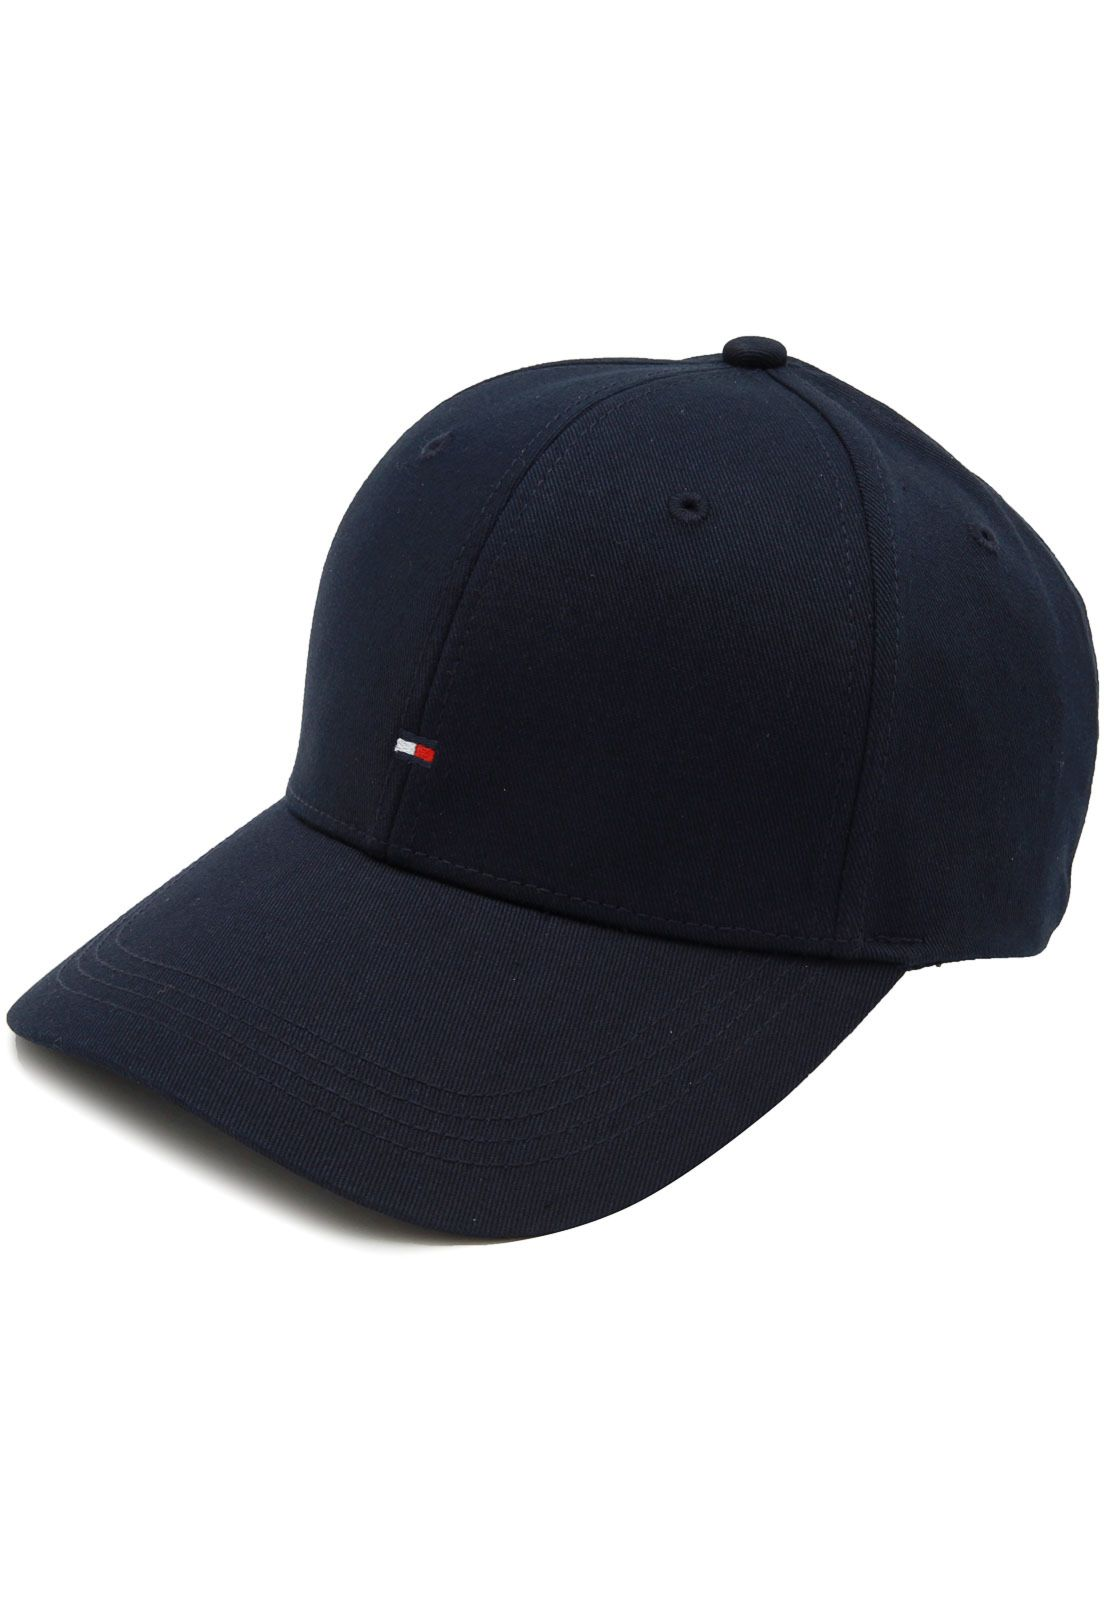 Tommy Hilfiger Unisex Baby Bb Cap Kappe